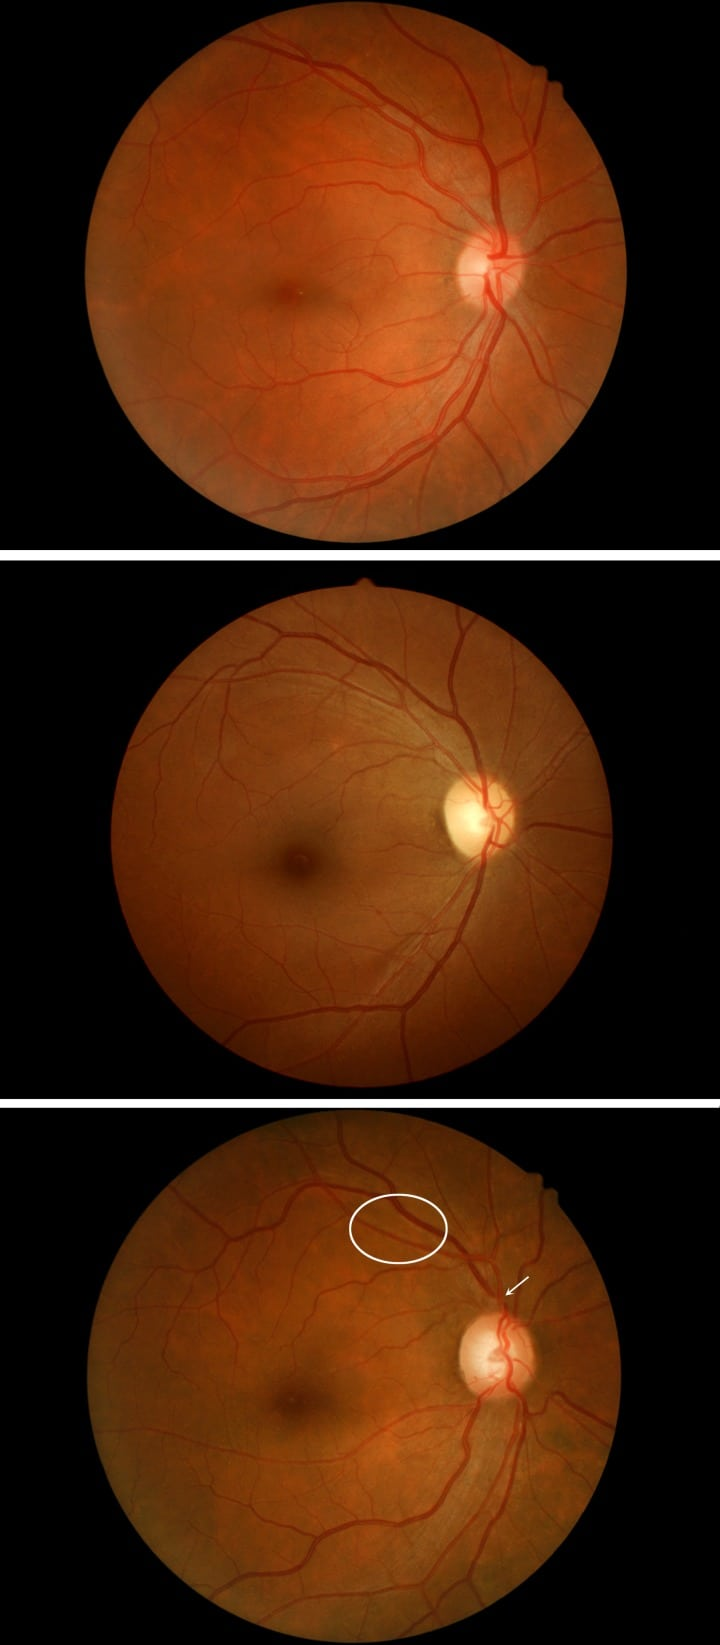 Grade III or Grade IV Hypertensive Retinopathy with Severely Elevated Blood Pressure